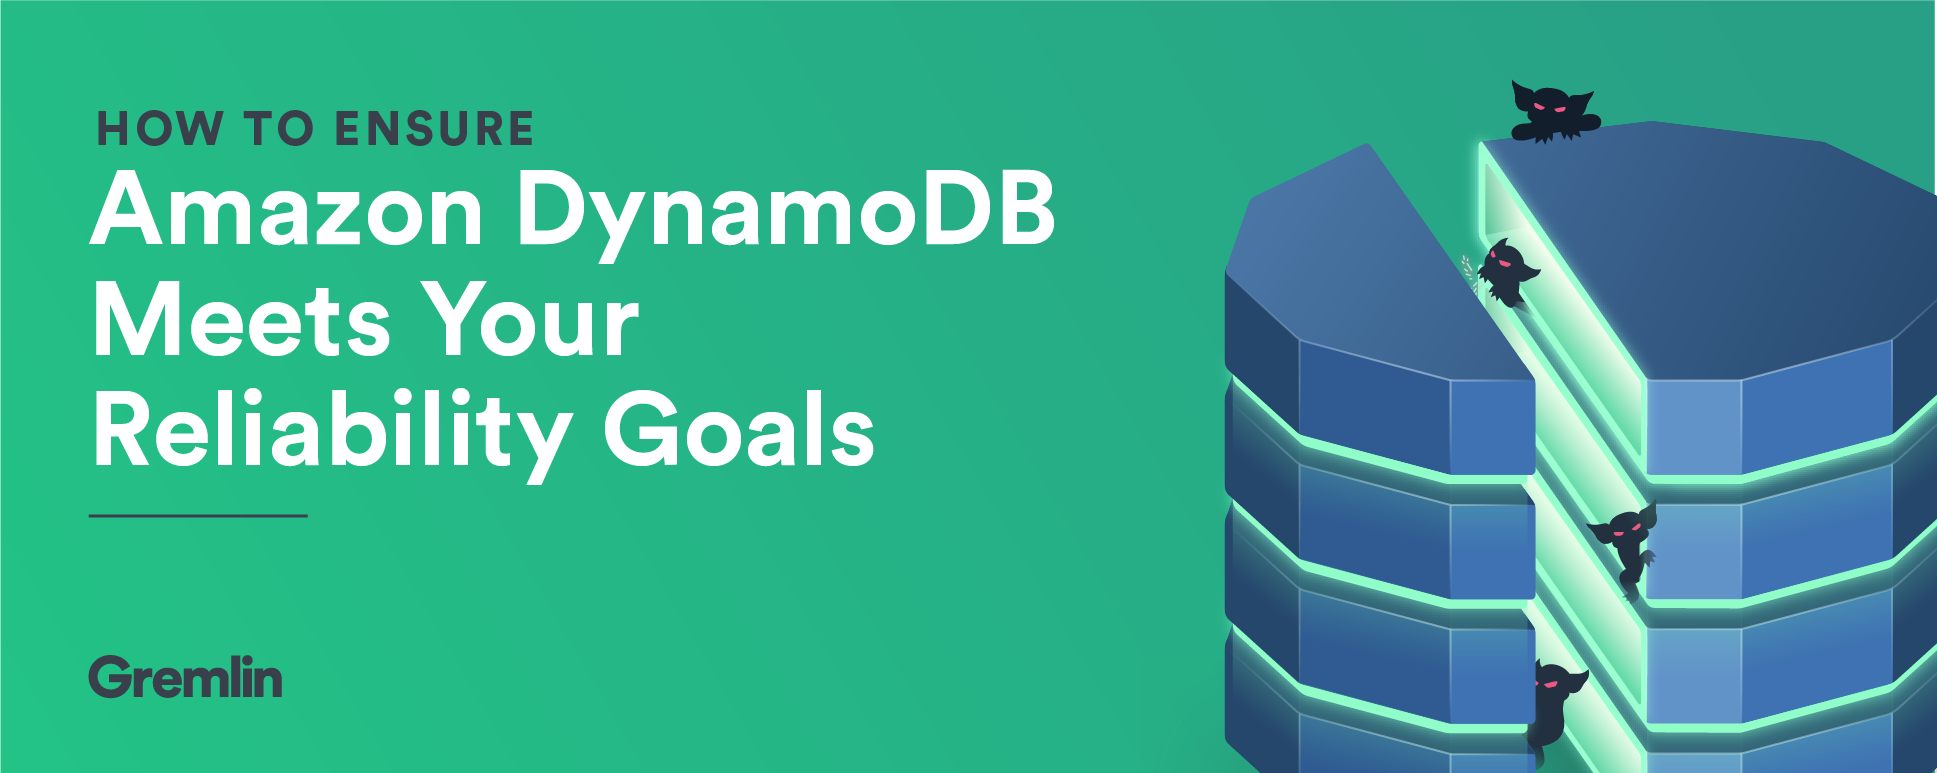 How to ensure Amazon DynamoDB meets your reliability goals